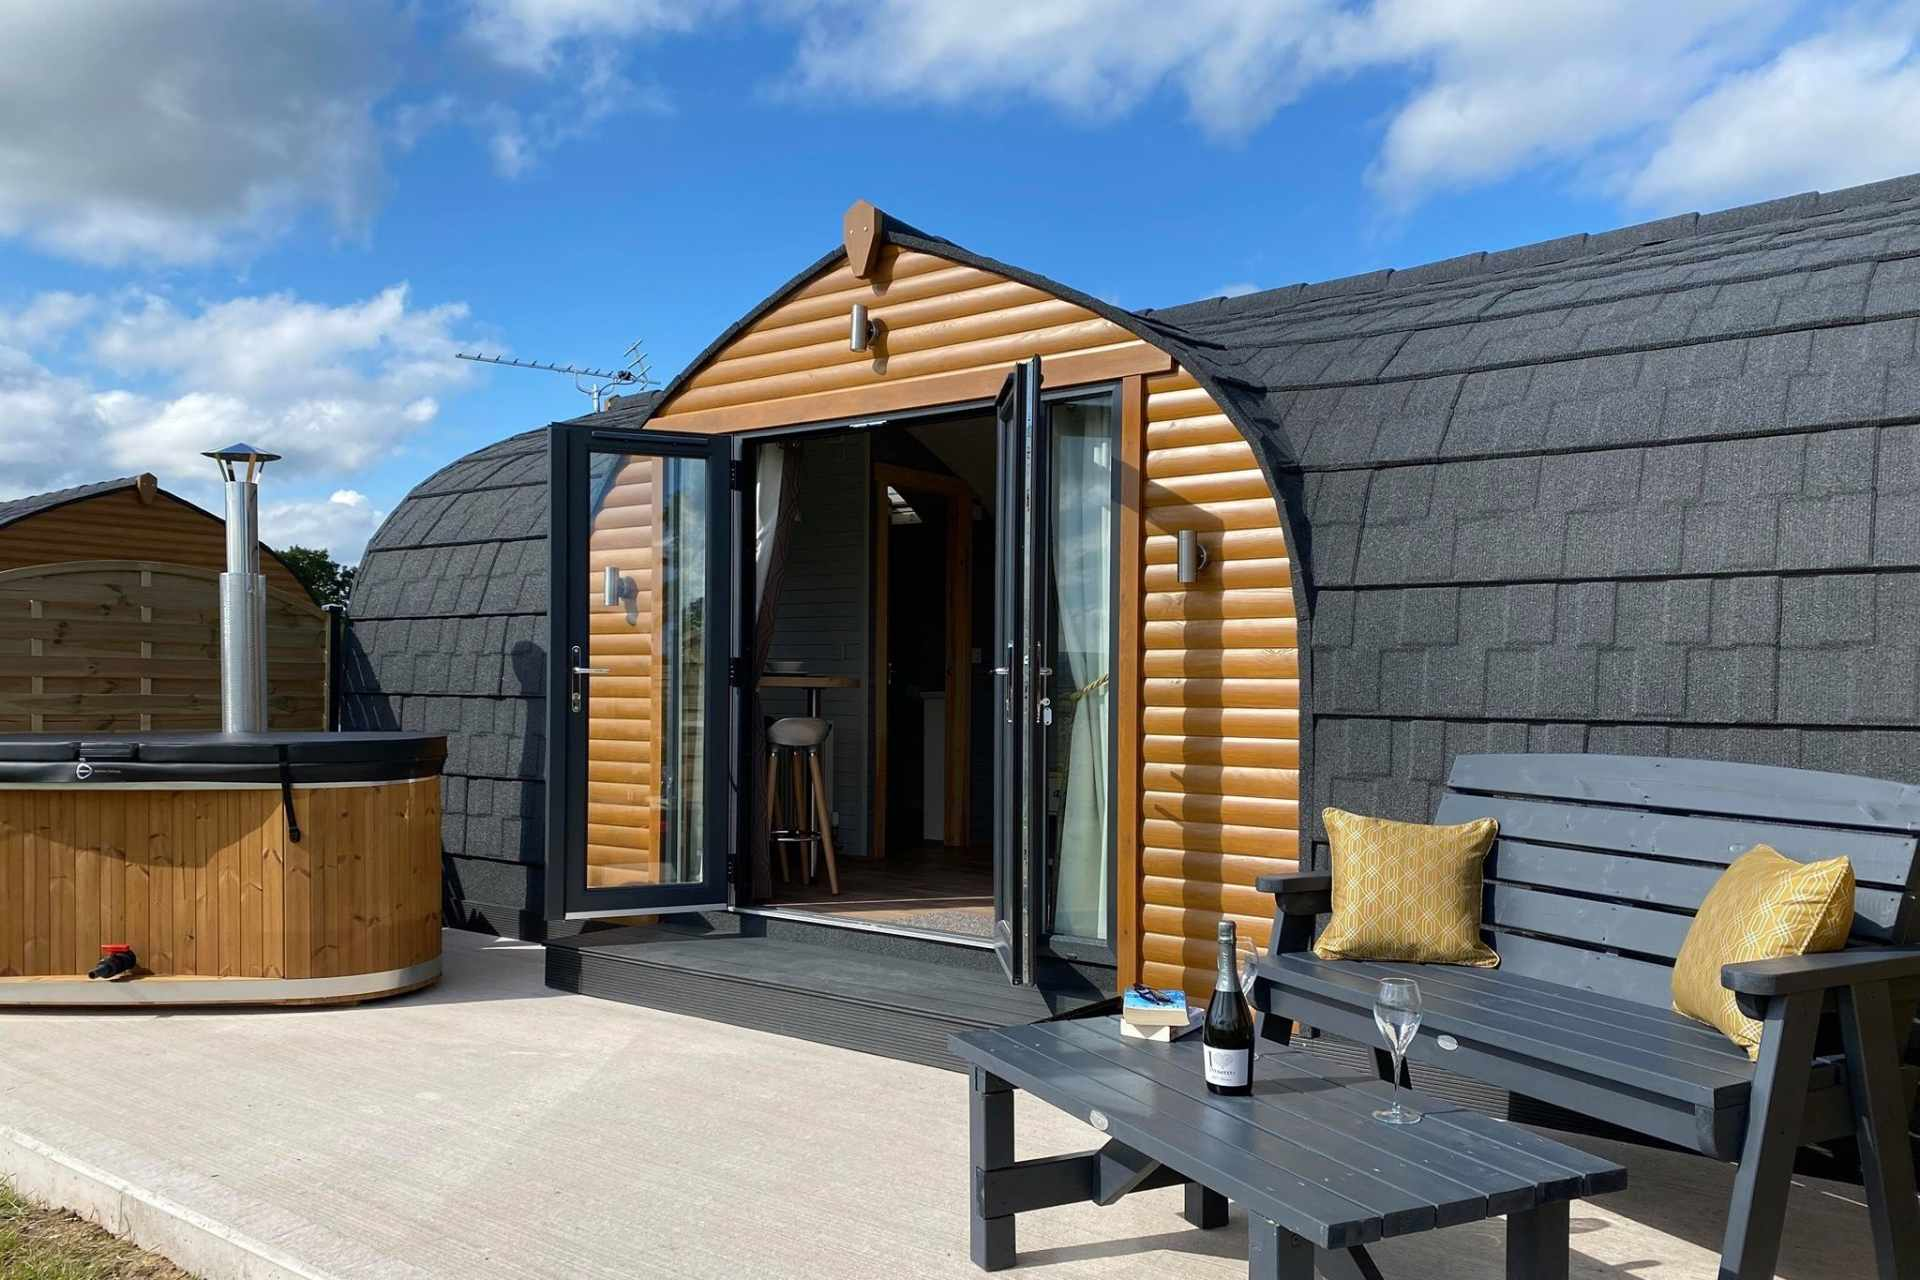 pasturewood-holiday-pods-on-decking-with-bench-and-table-on-summers-day-glamping-with-hot-tub-lake-district